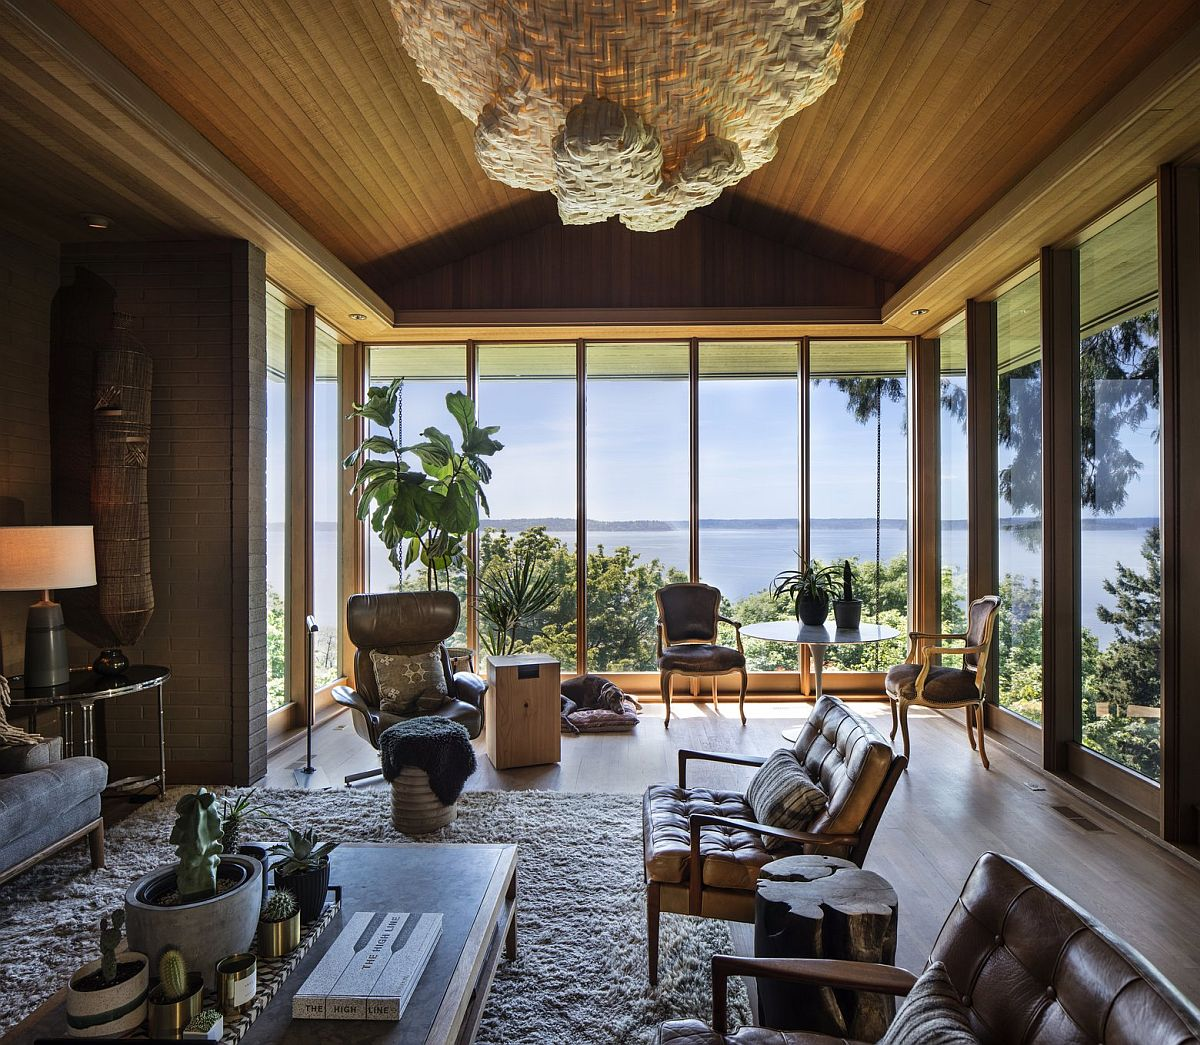 Living room nestled on the edge of the cliff offers some of the most amazing views at the house